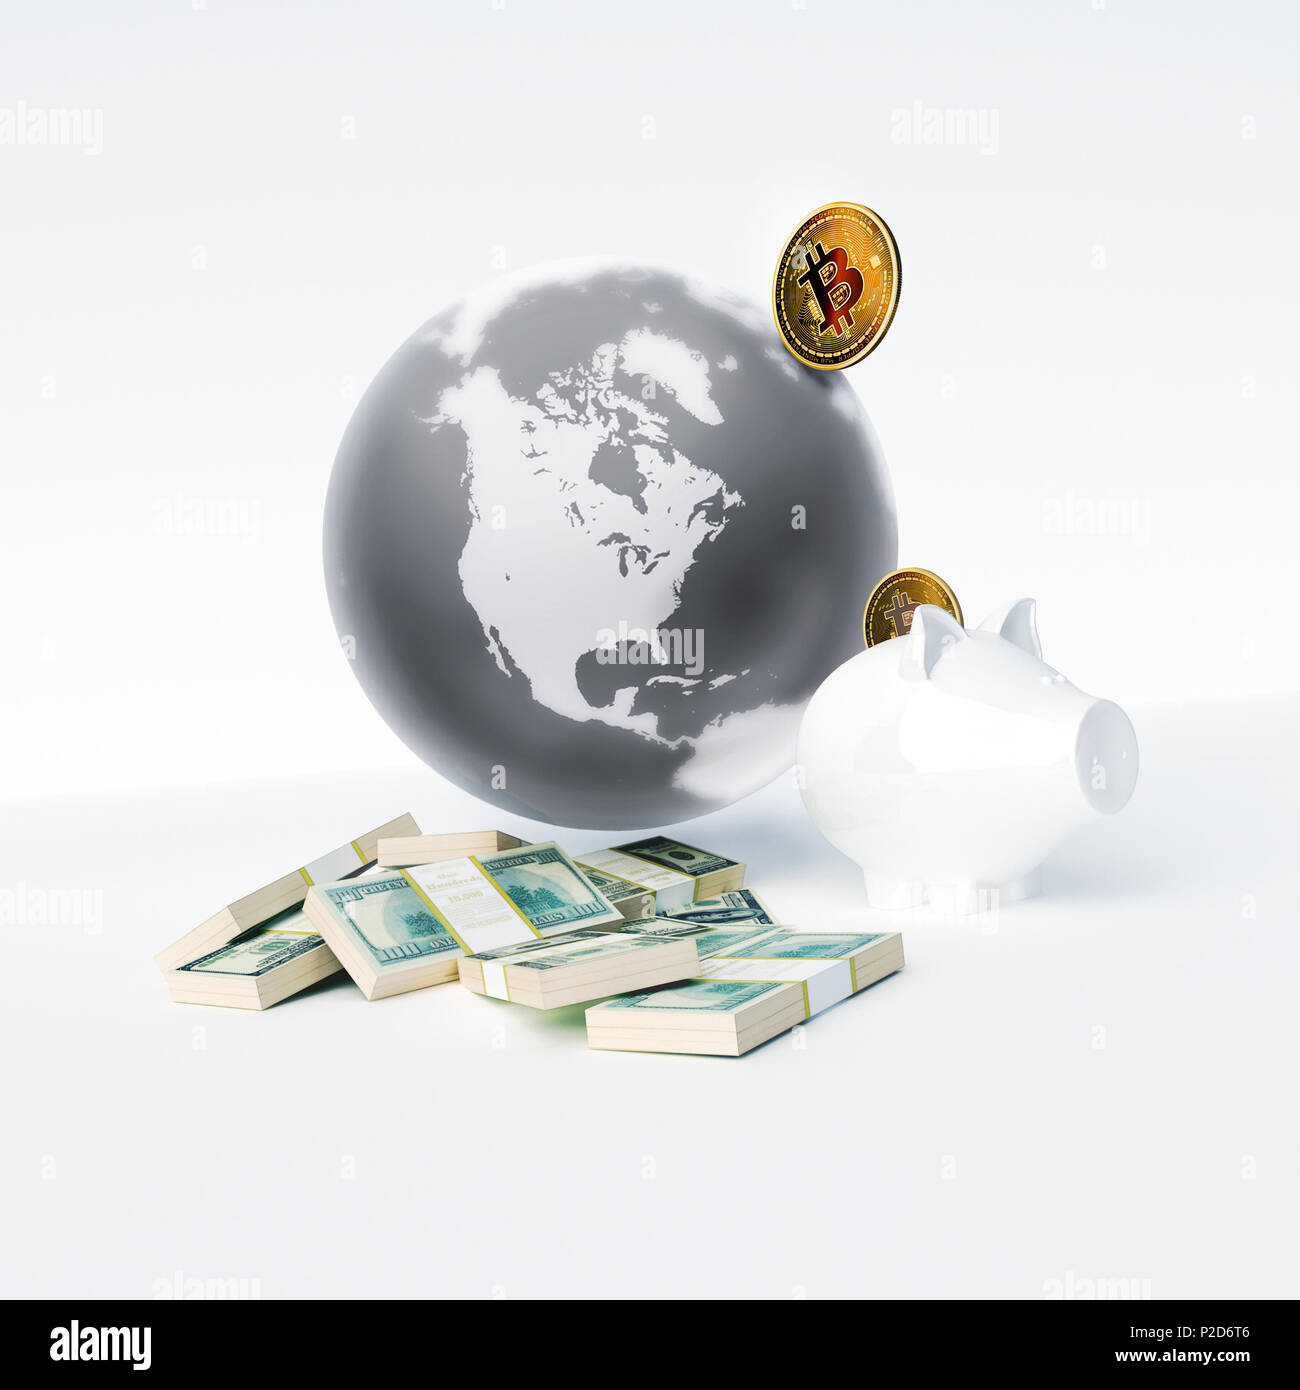 Bitcoin As A Symbol World Currency Globalization Globalize